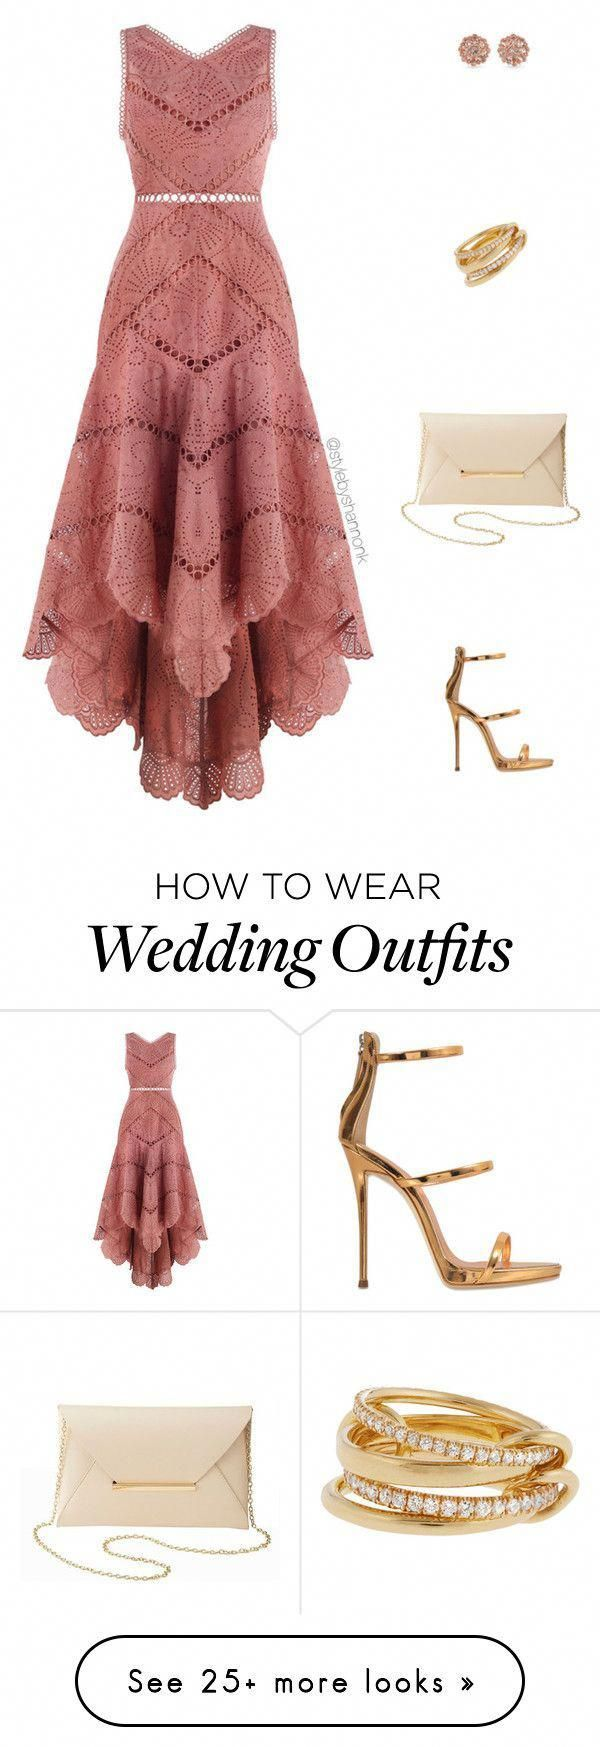 Wedding Guest By Stylebyshannonk On Polyvore Featuring Zimmermann Giuseppe Zan Casual Wedding Outfit Guest Wedding Guest Outfit Summer Casual Wedding Outfit [ 1747 x 600 Pixel ]